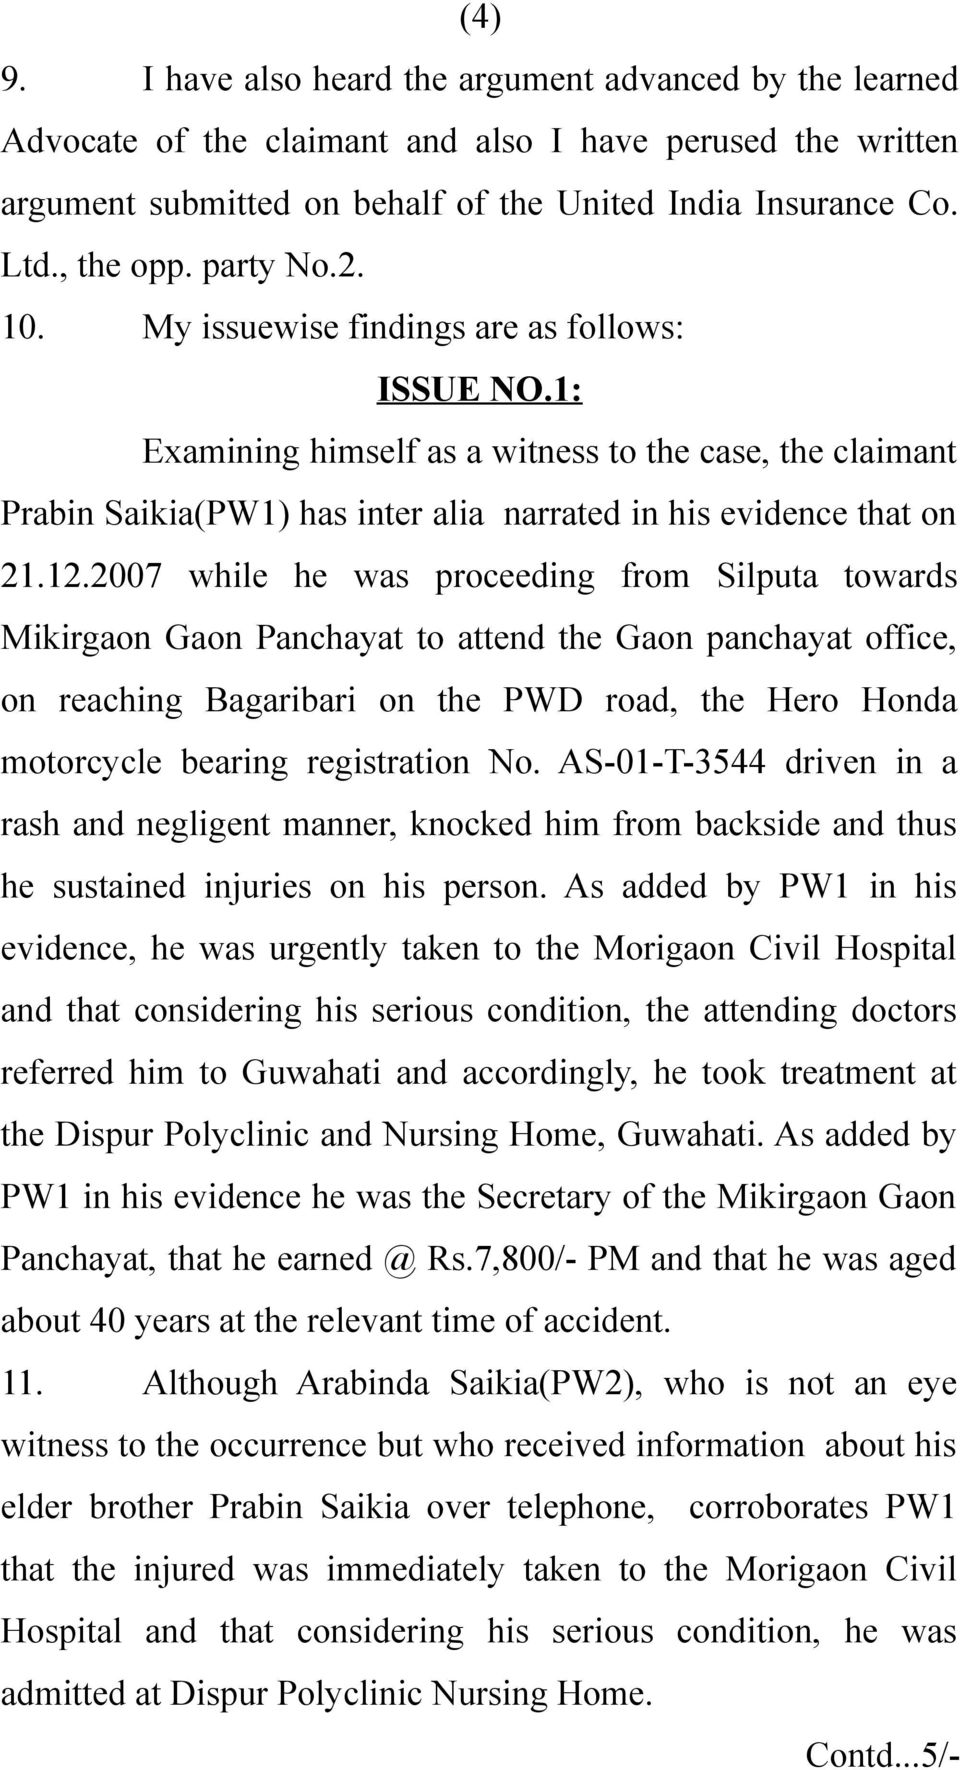 2007 while he was proceeding from Silputa towards Mikirgaon Gaon Panchayat to attend the Gaon panchayat office, on reaching Bagaribari on the PWD road, the Hero Honda motorcycle bearing registration